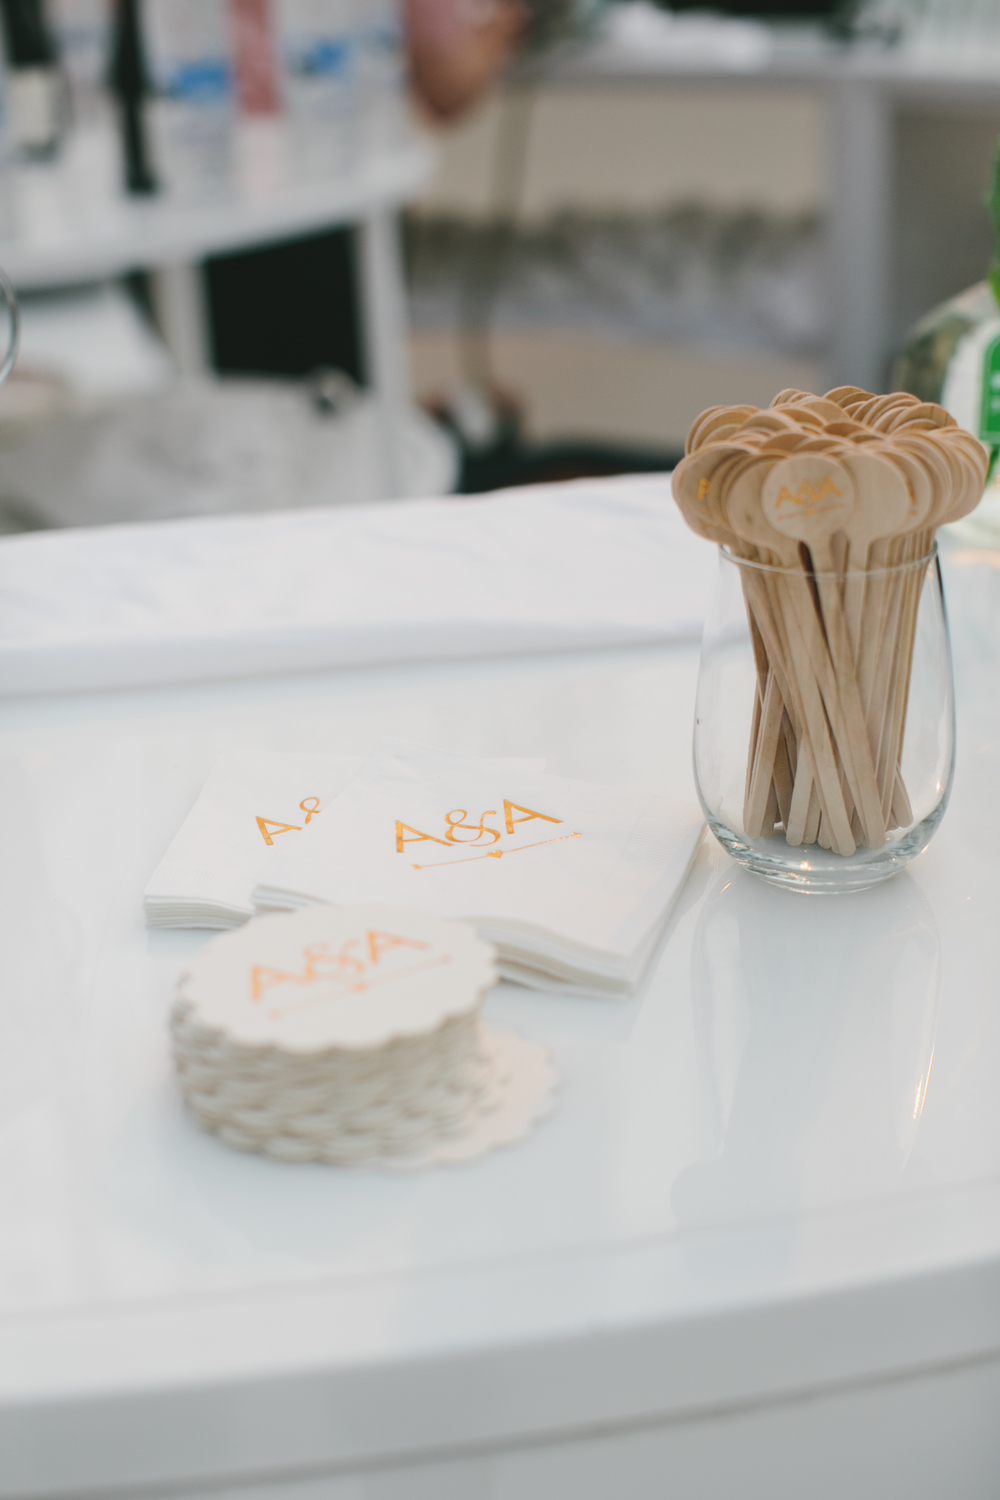 Custom Coasters and Stir Sticks | Wedding Planning & Design by Cynthia Martyn Fine Events |  | Fine Art Wedding Planning & Design